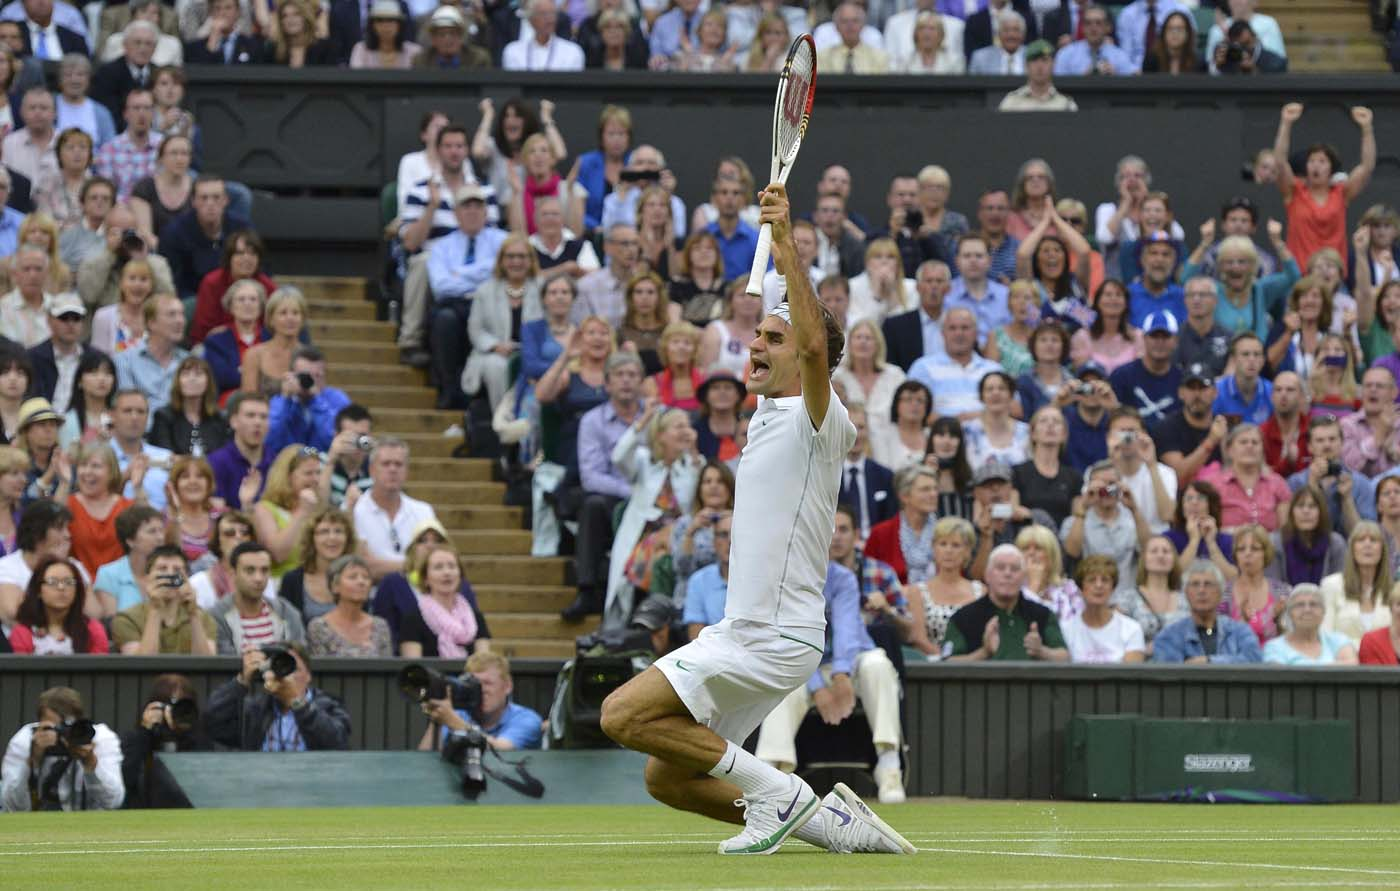 July 8 Photo Brief: Roger Federer wins seventh Wimbledon Title, rebels seize towns in eastern Democratic Republic of Congo